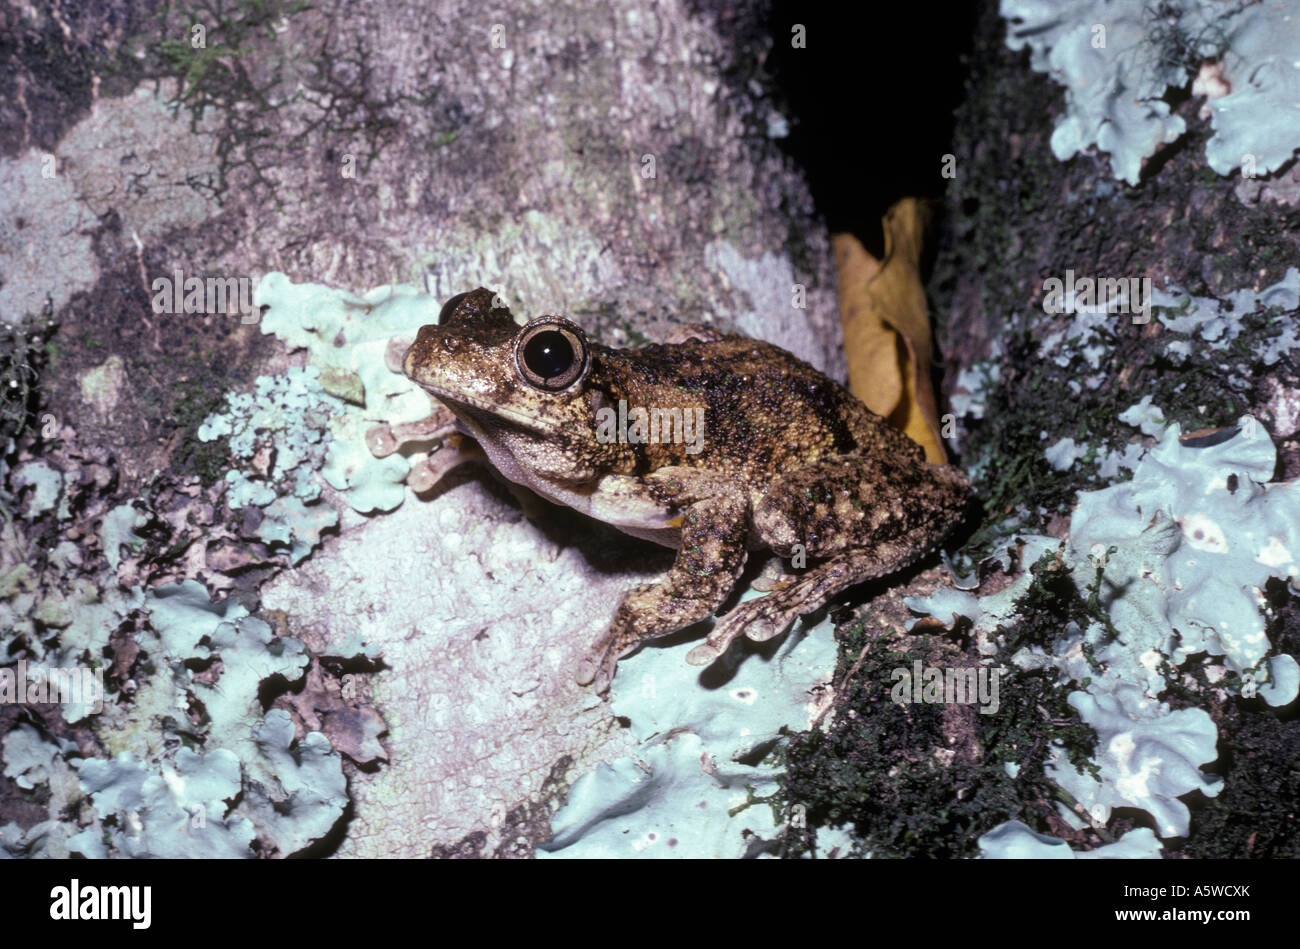 Peron s tree frog Litoria peronii Hylidae at night in rainforest Queensland Australia - Stock Image